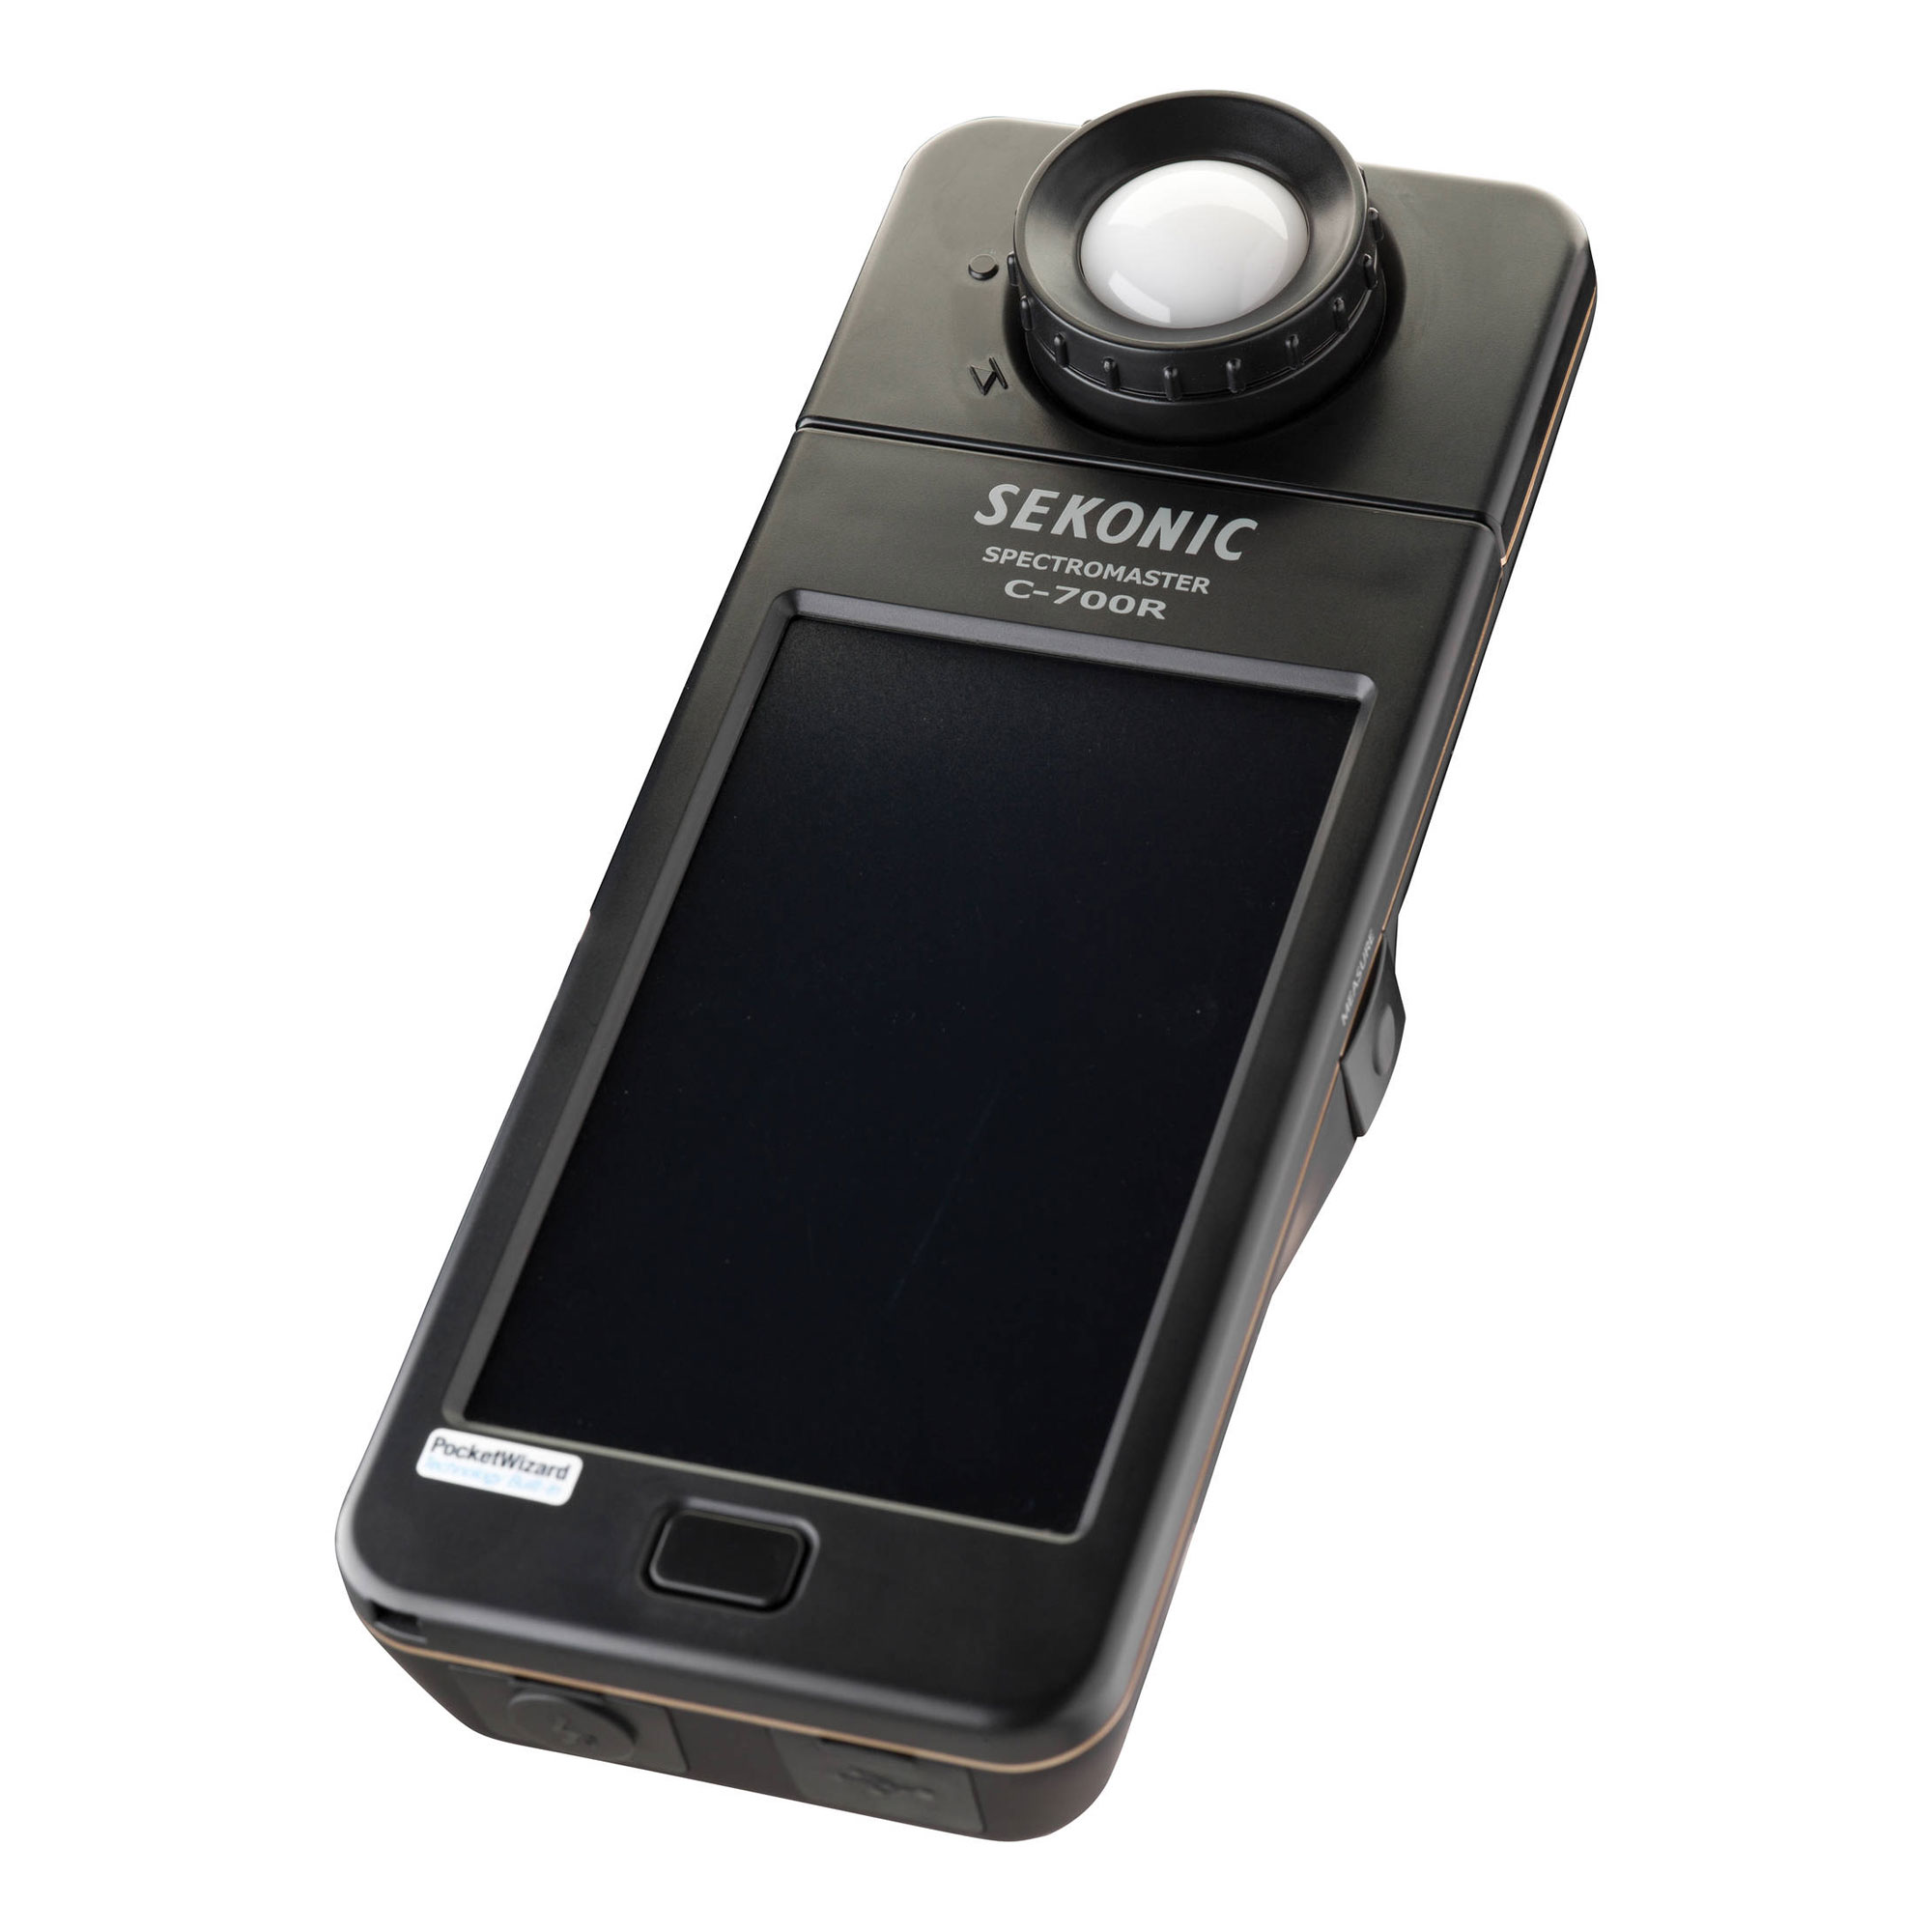 C-700R SpectroMaster Color Meter with Wireless Flash Triggering